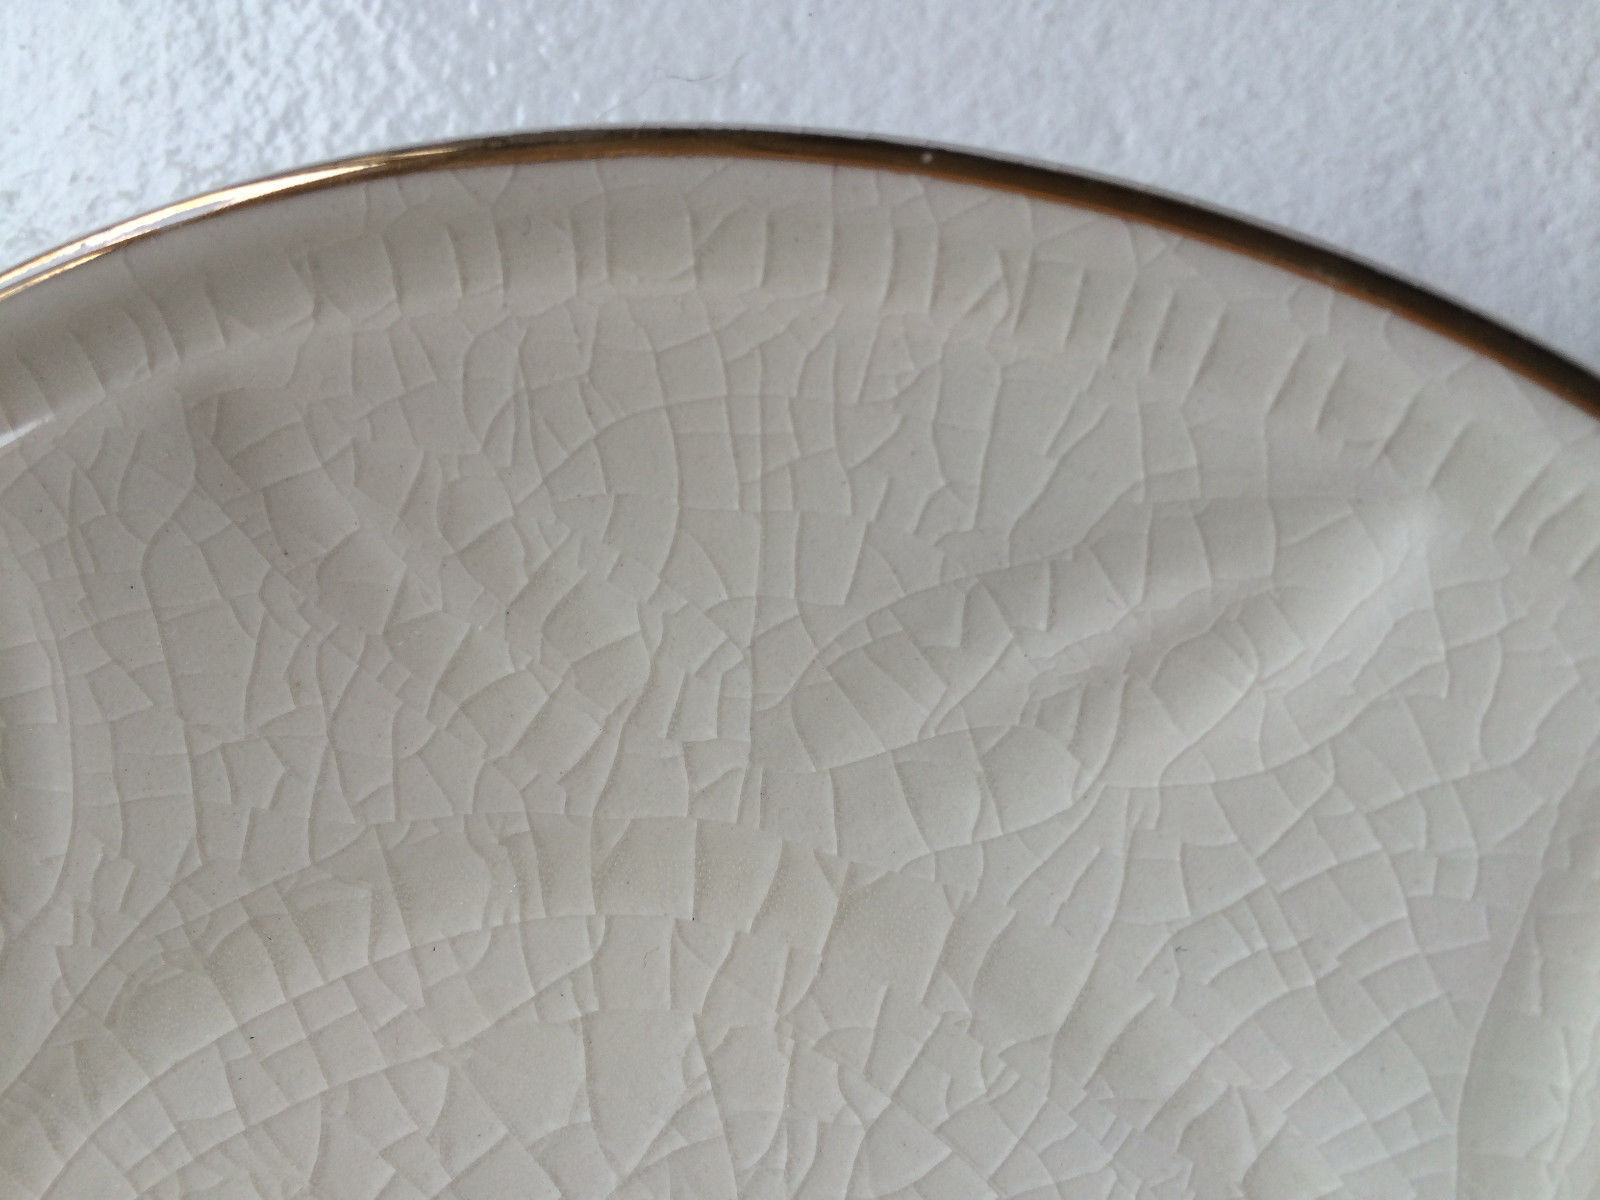 Ariodante Anthropologie  Crackle Saucer tea snack side dessert plate